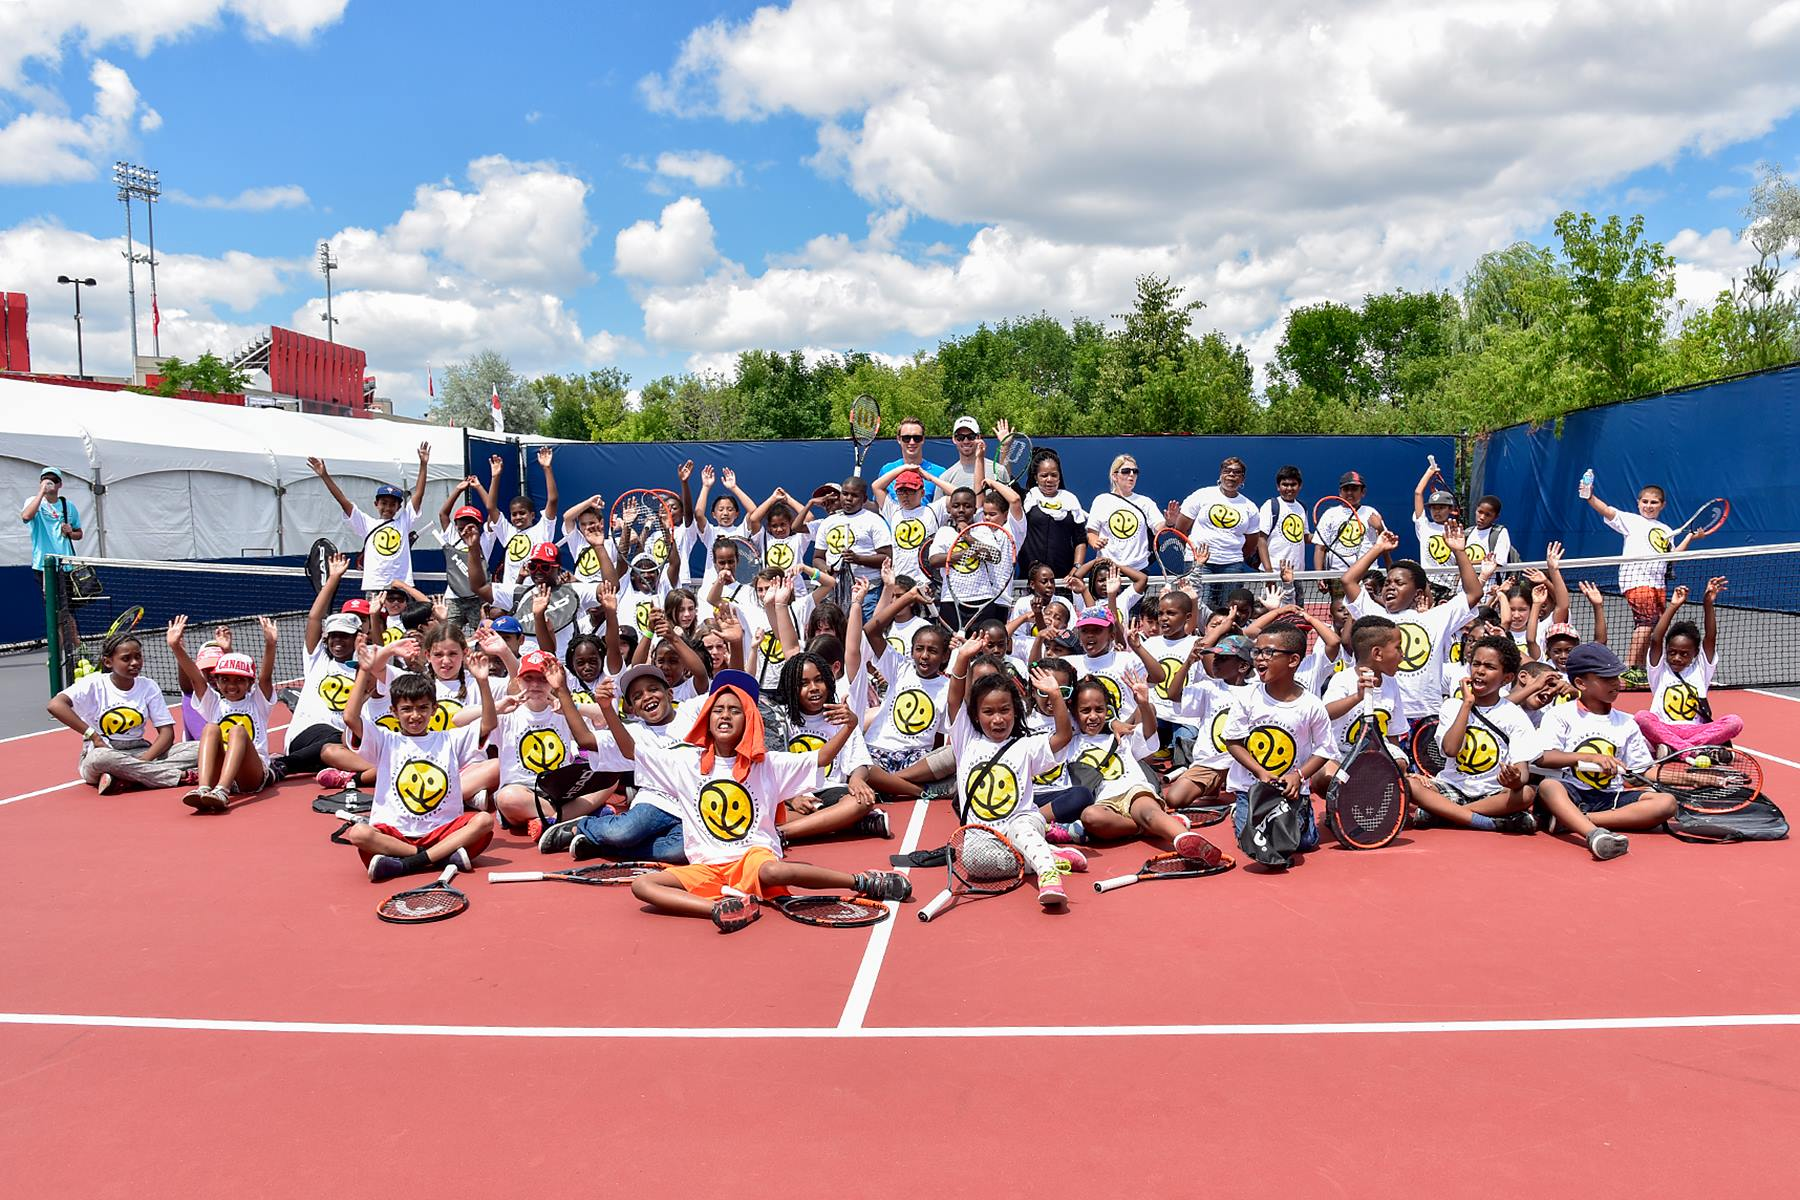 You are currently viewing 2016 PHILPOTT CAMPERS AT THE ROGERS CUP